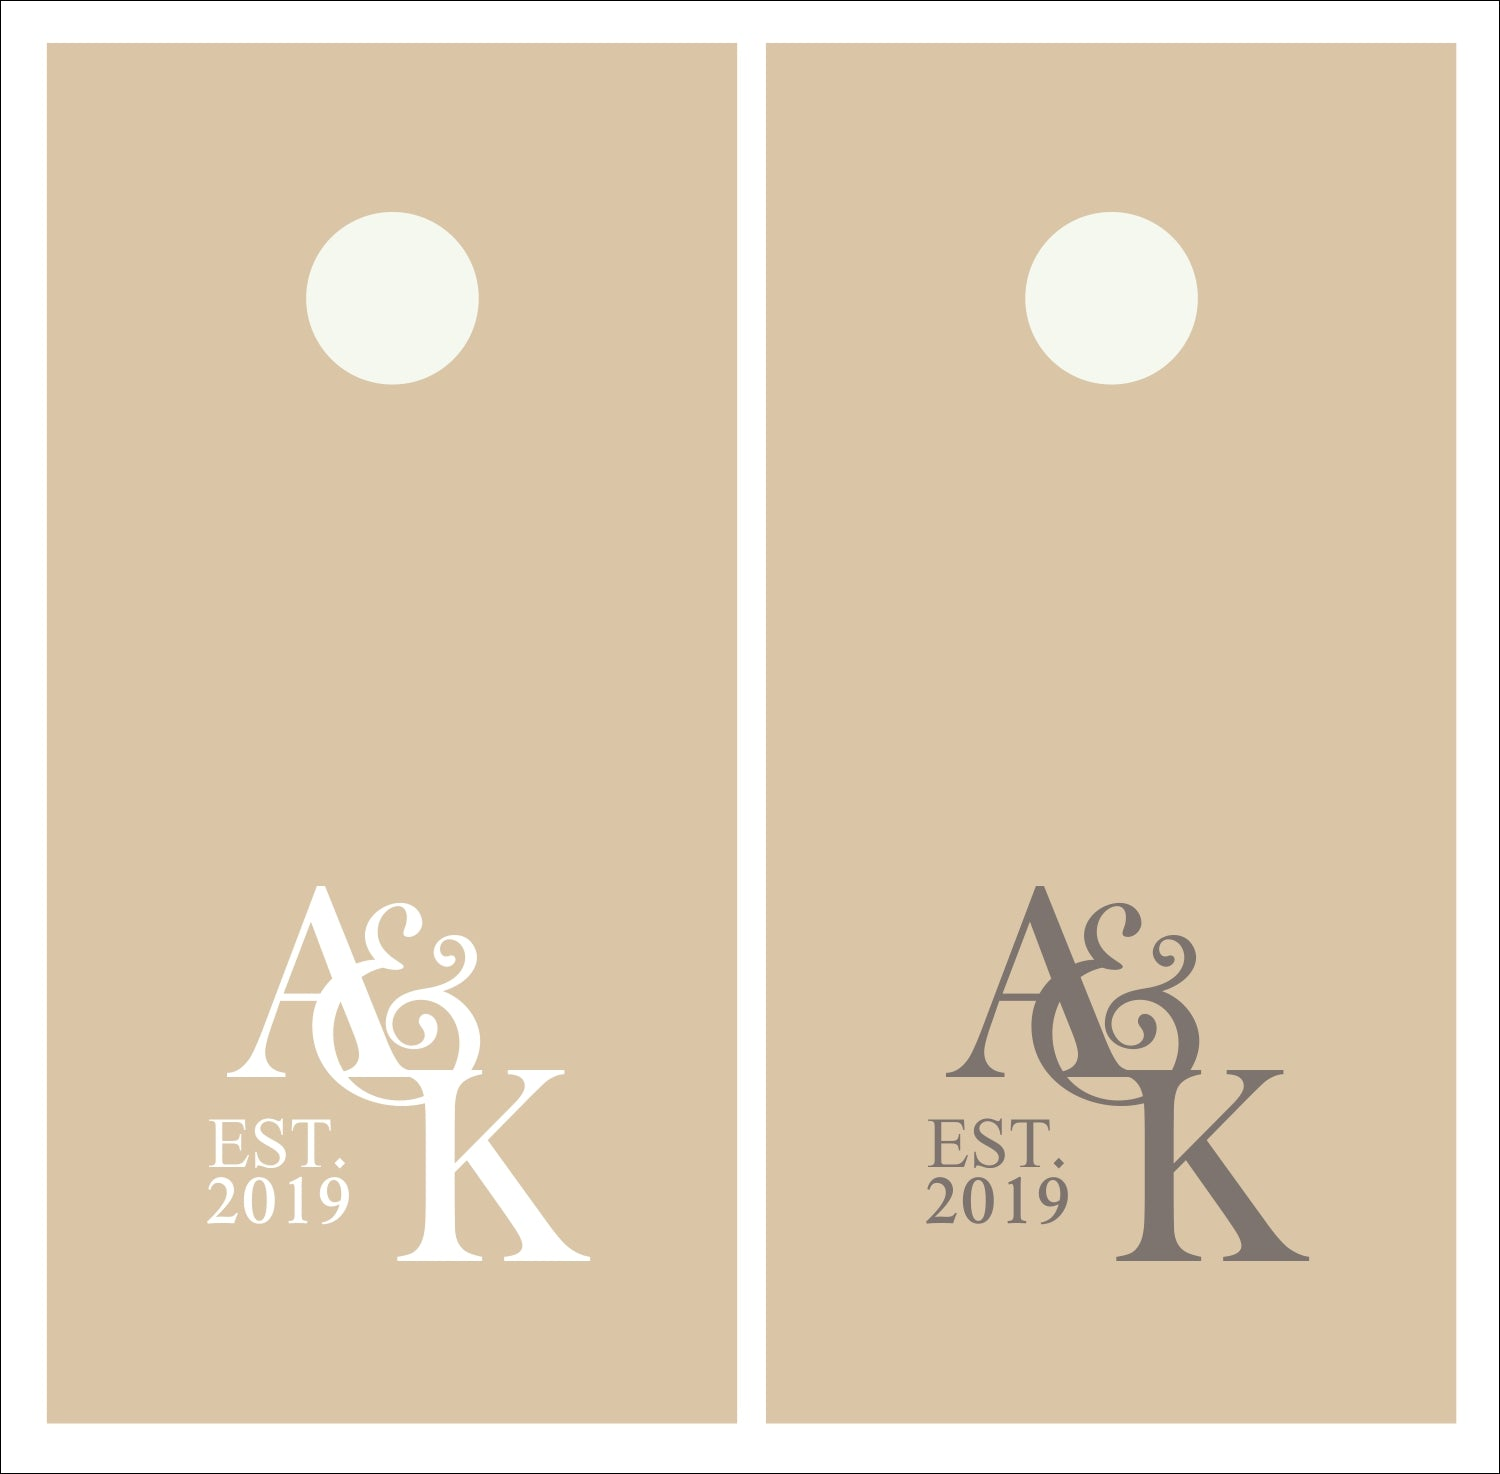 Bride & Groom Intertwined Wedding Initials Vinyl Decals - Set of TWO for Cornhole Game